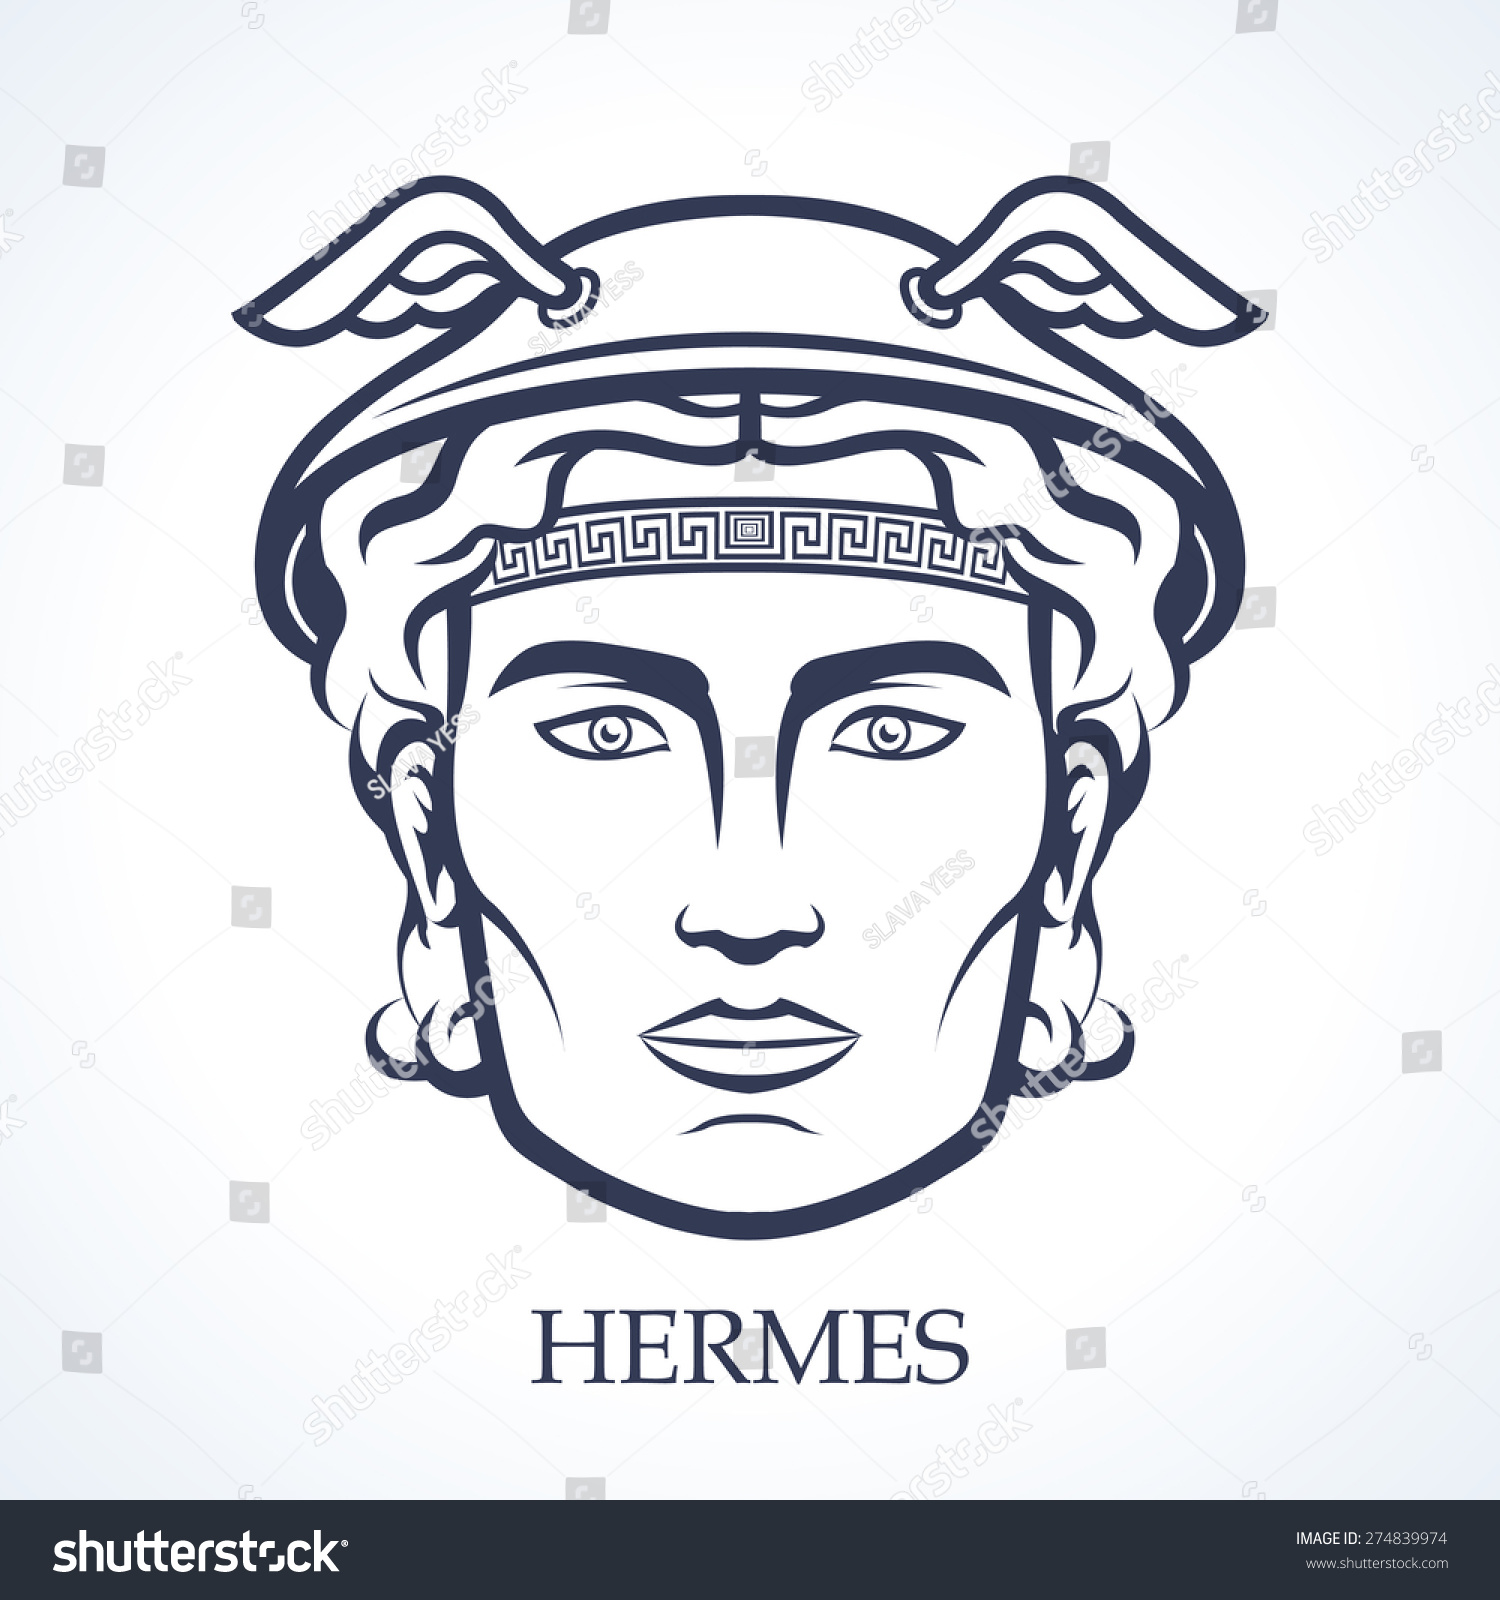 Hermes Ancient Greek God Commerce Tradesmanship Stock ...